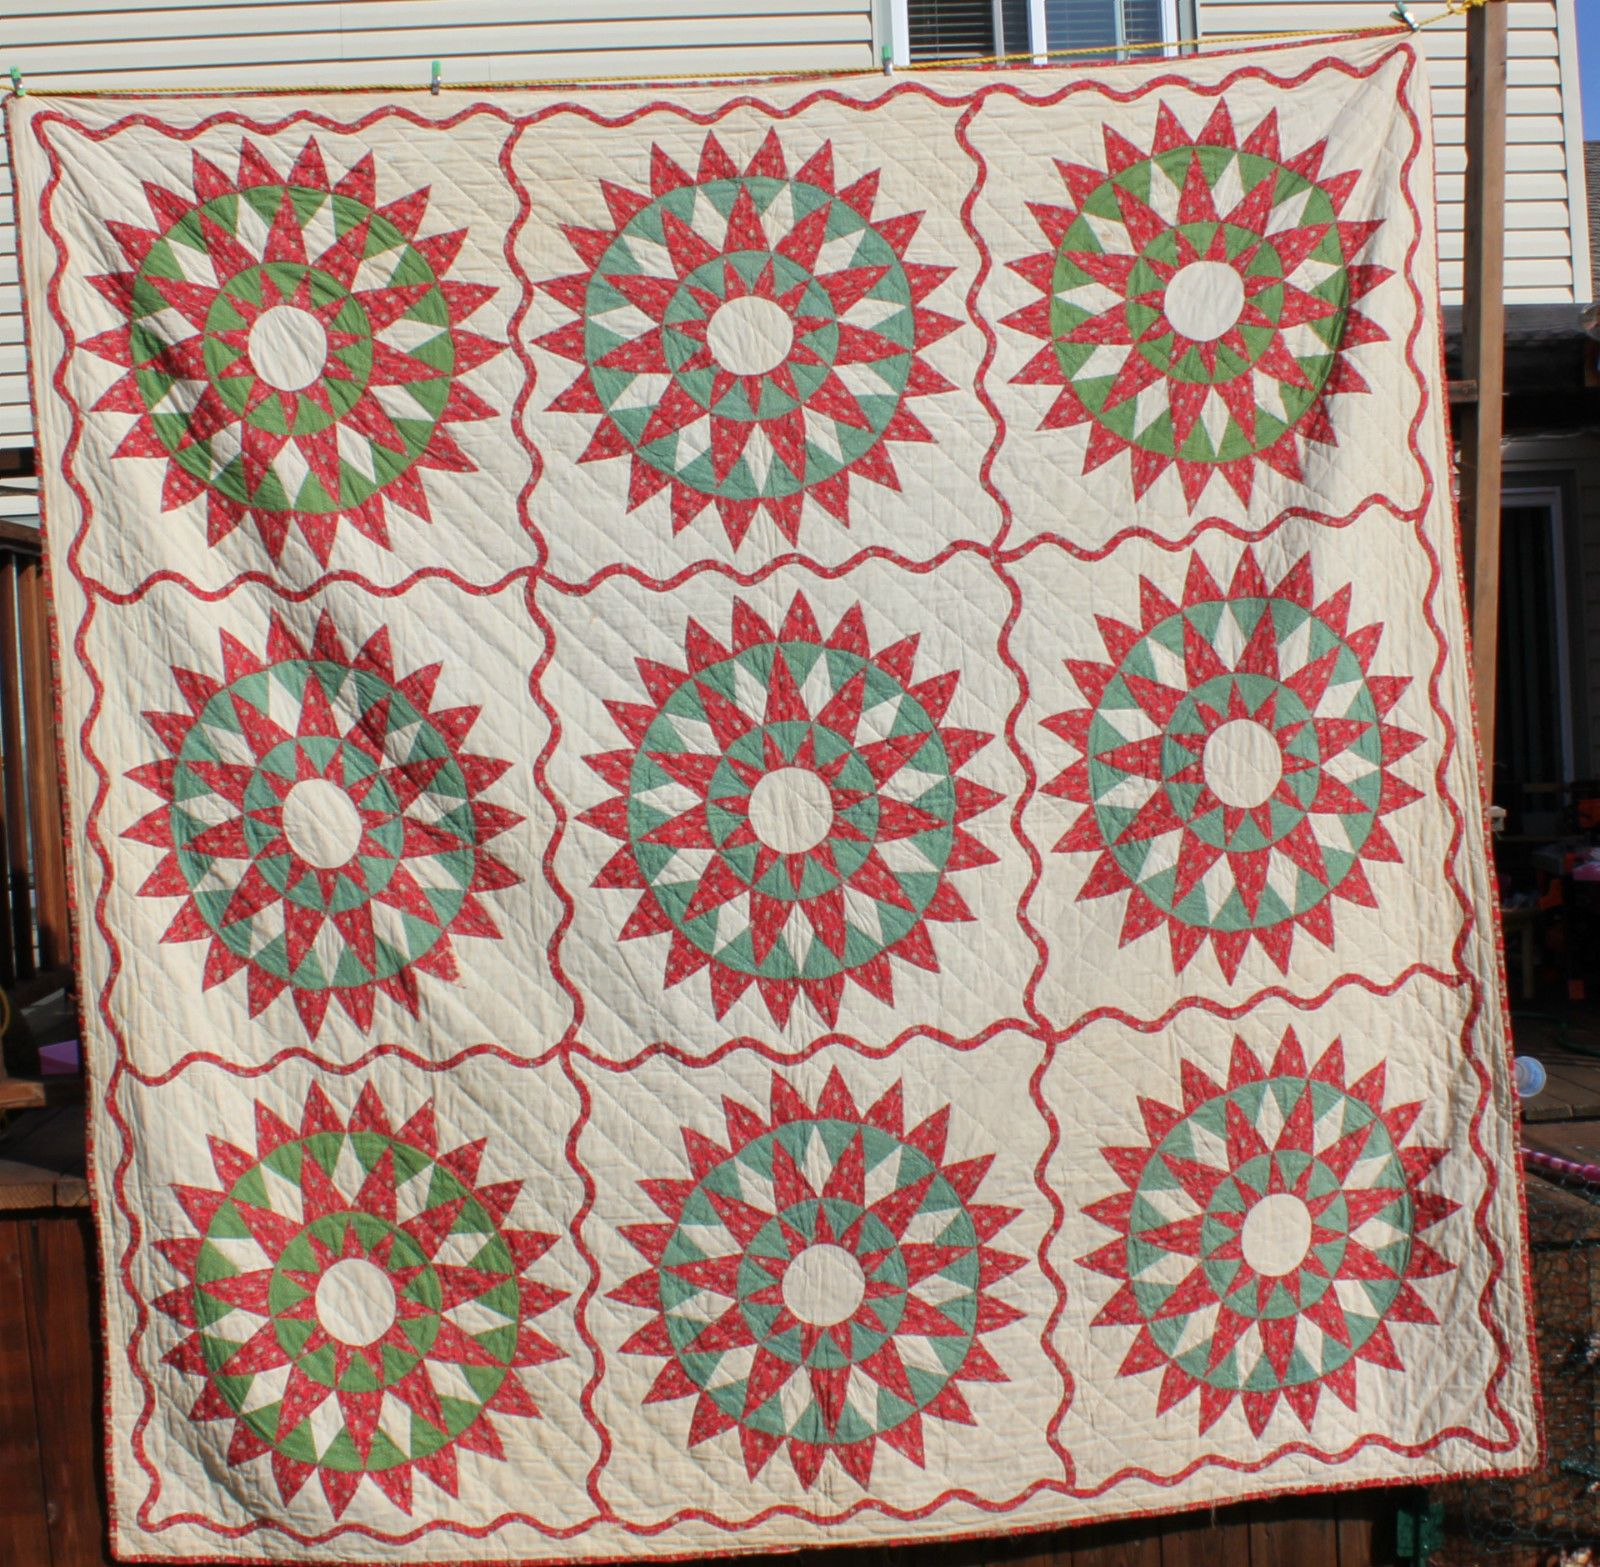 Early antique us mariners compass star quilt red and green